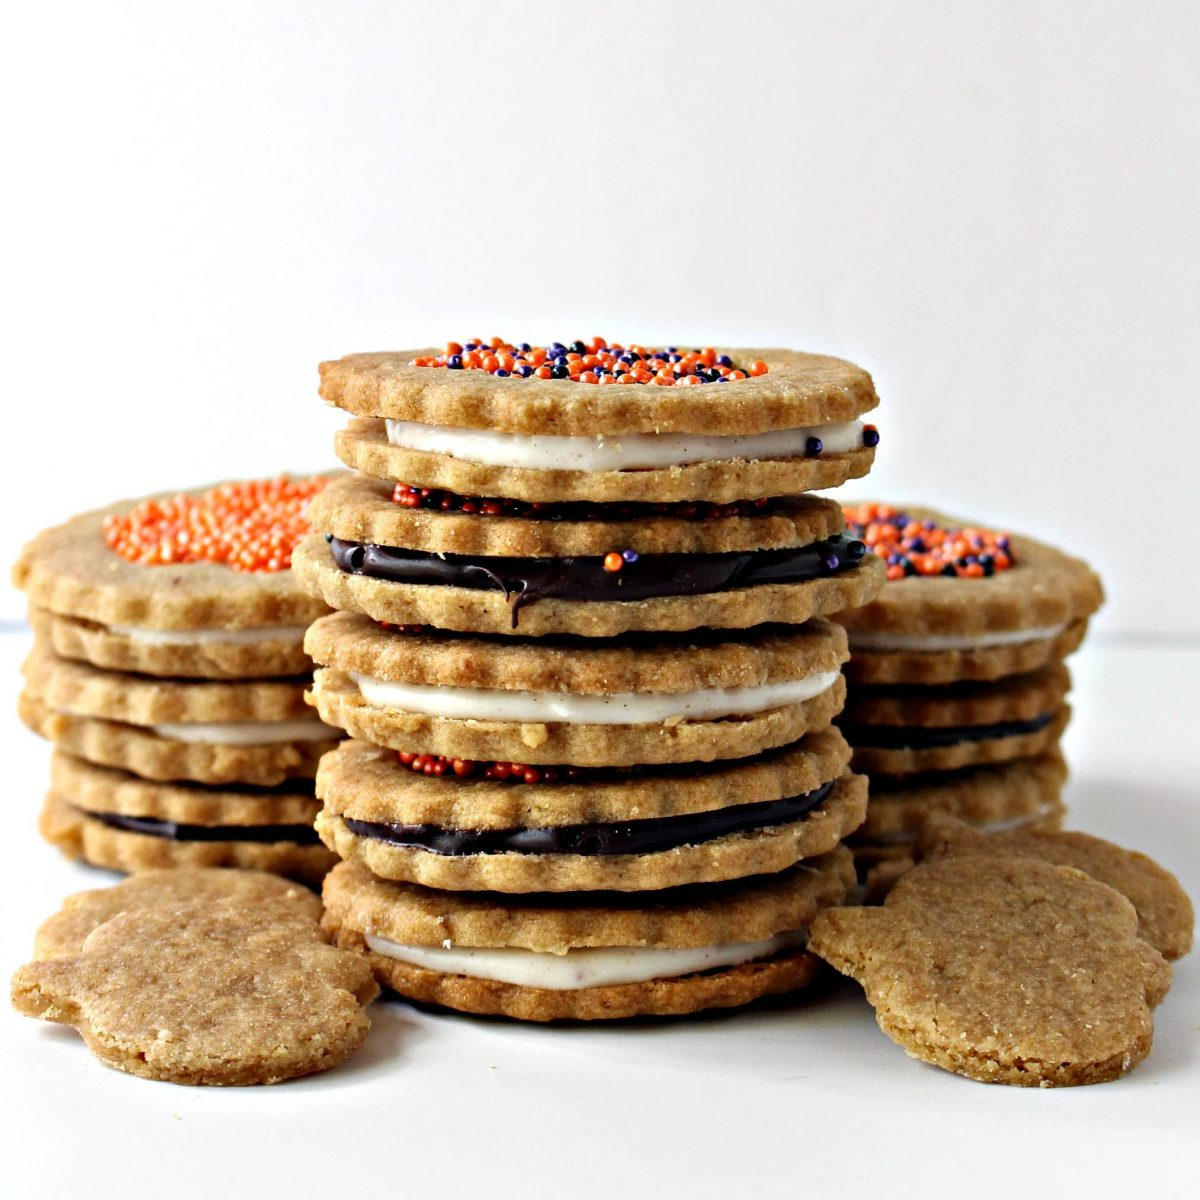 Stack of homemade graham cracker sandwich cookies filled with dark or white chocolate.